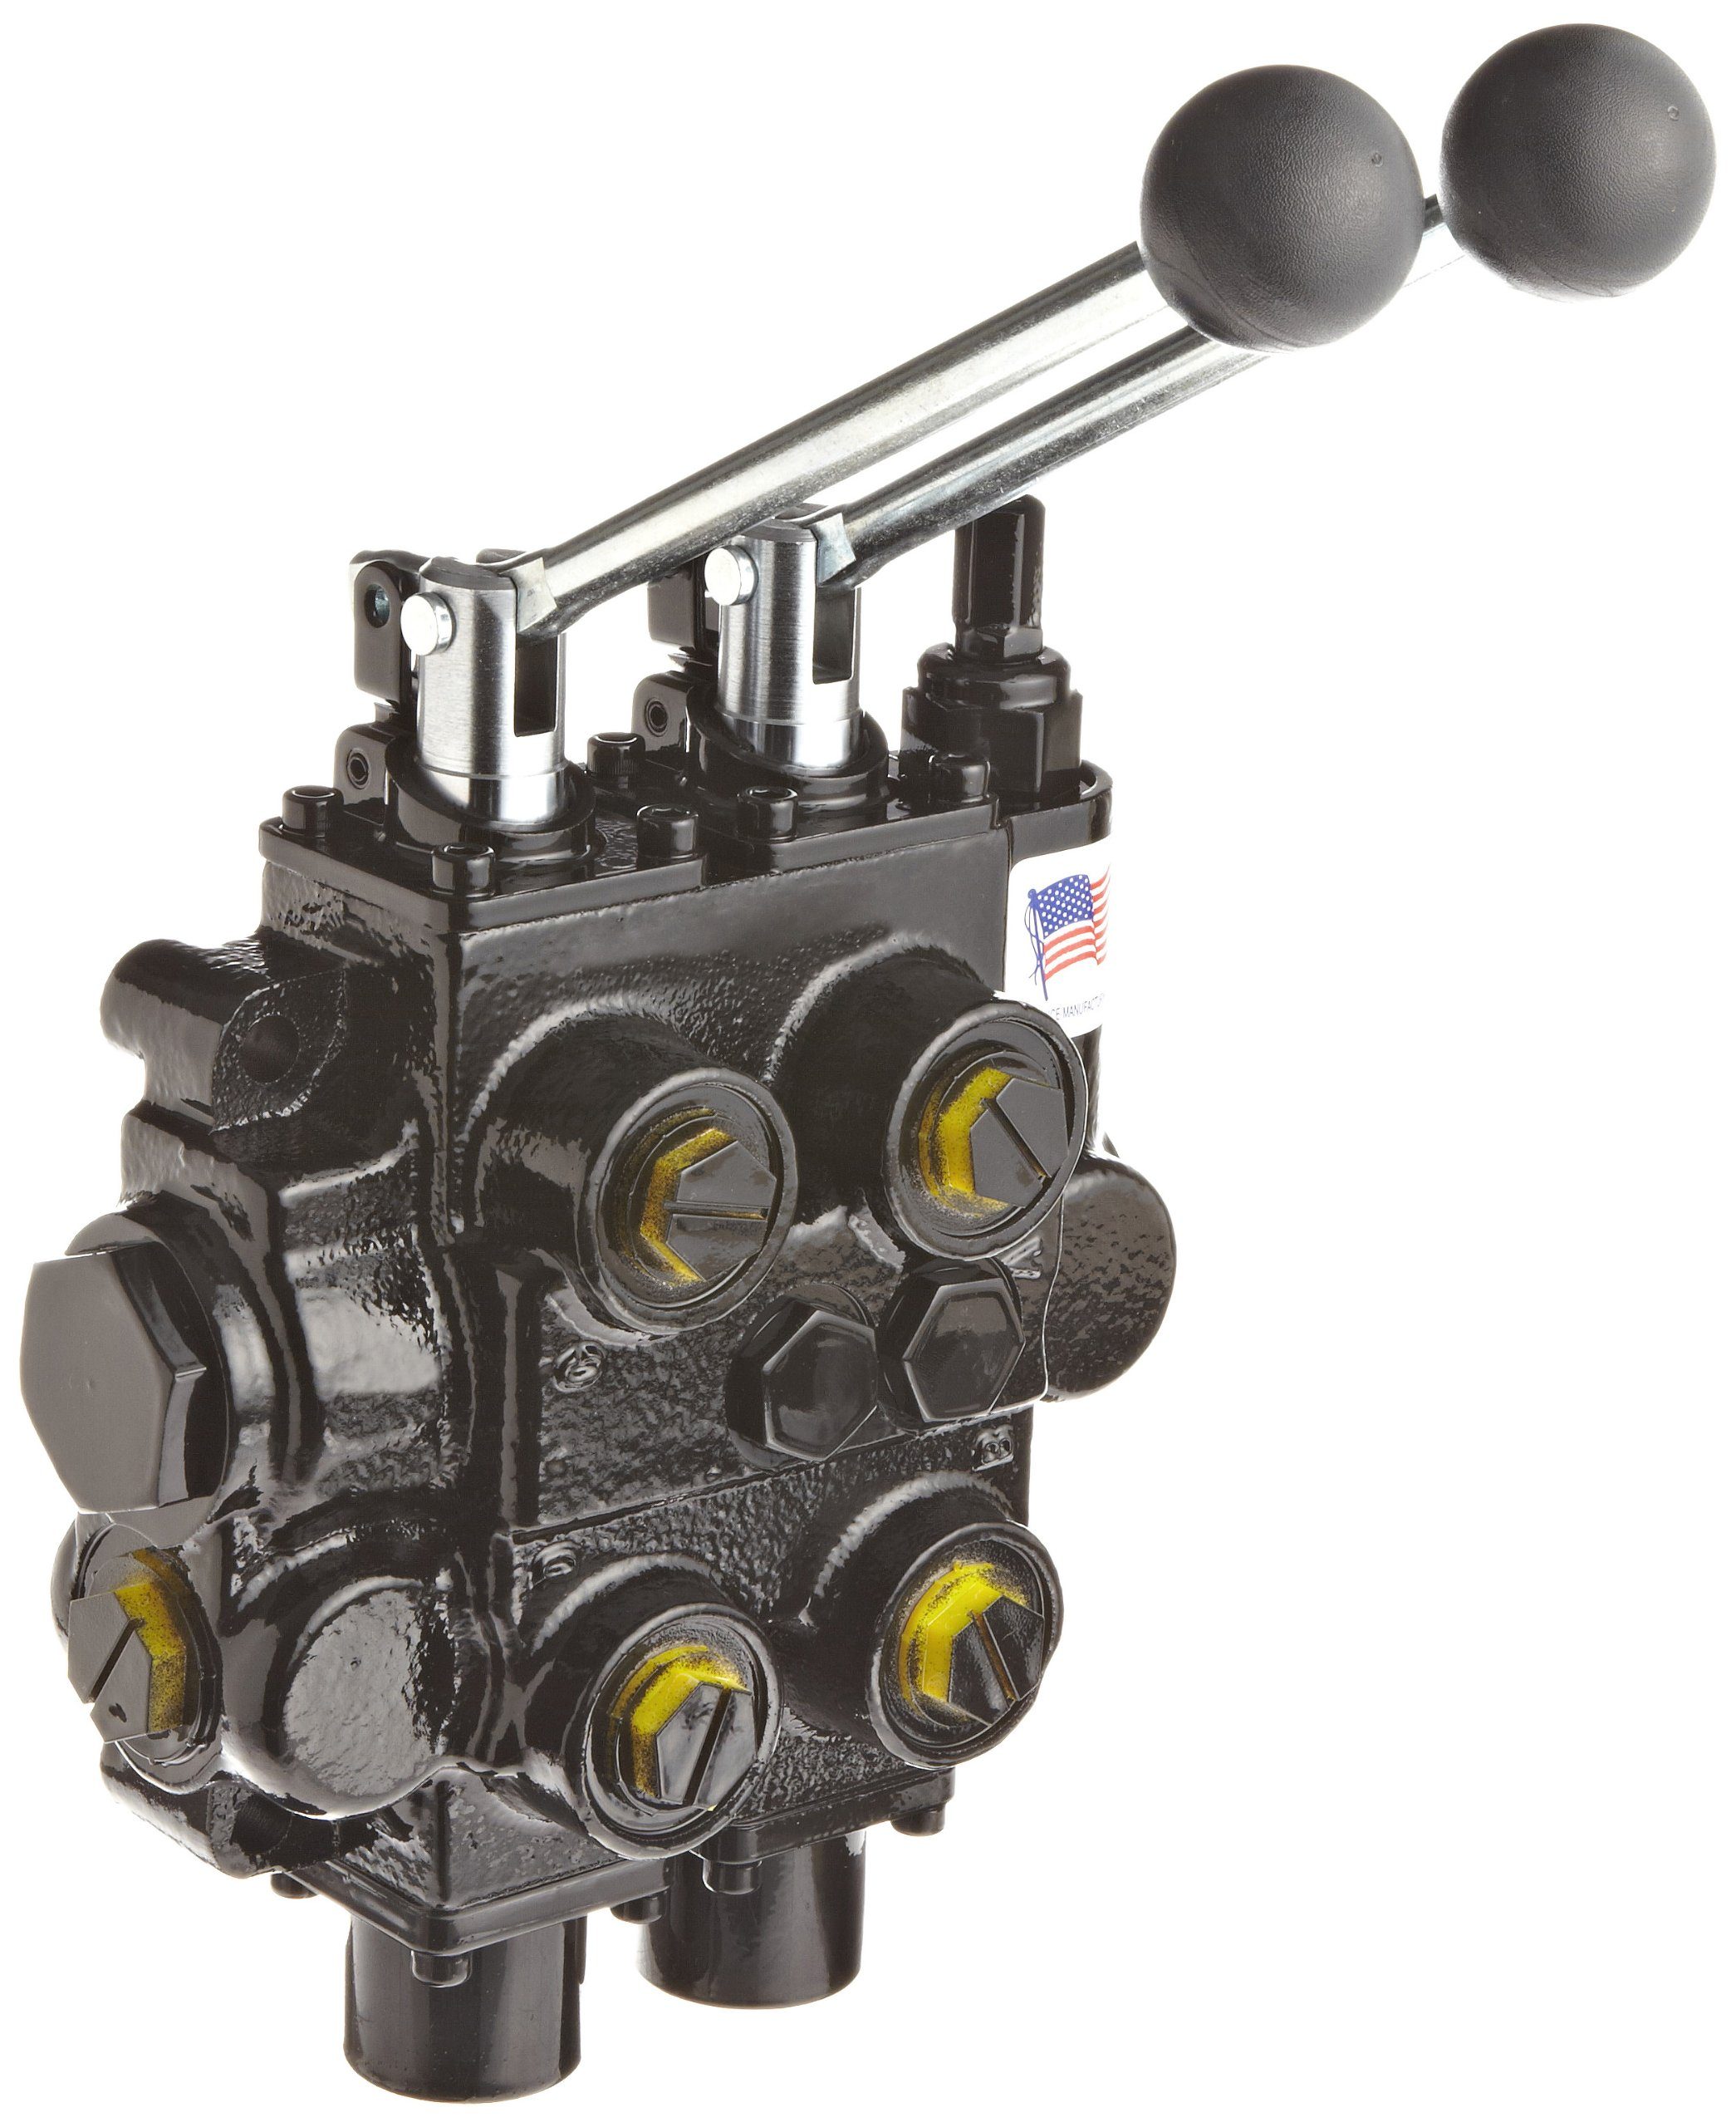 Prince RD526CCAA5A4B1 Directional Control Valve, Monoblock, Cast Iron, 2 Spool, 4 Ways, 3 Positions, Tandem, Spring Center, Lever Handle, 3000 psi, 25 gpm, In/Out: #12 SAE, Work #10 SAE